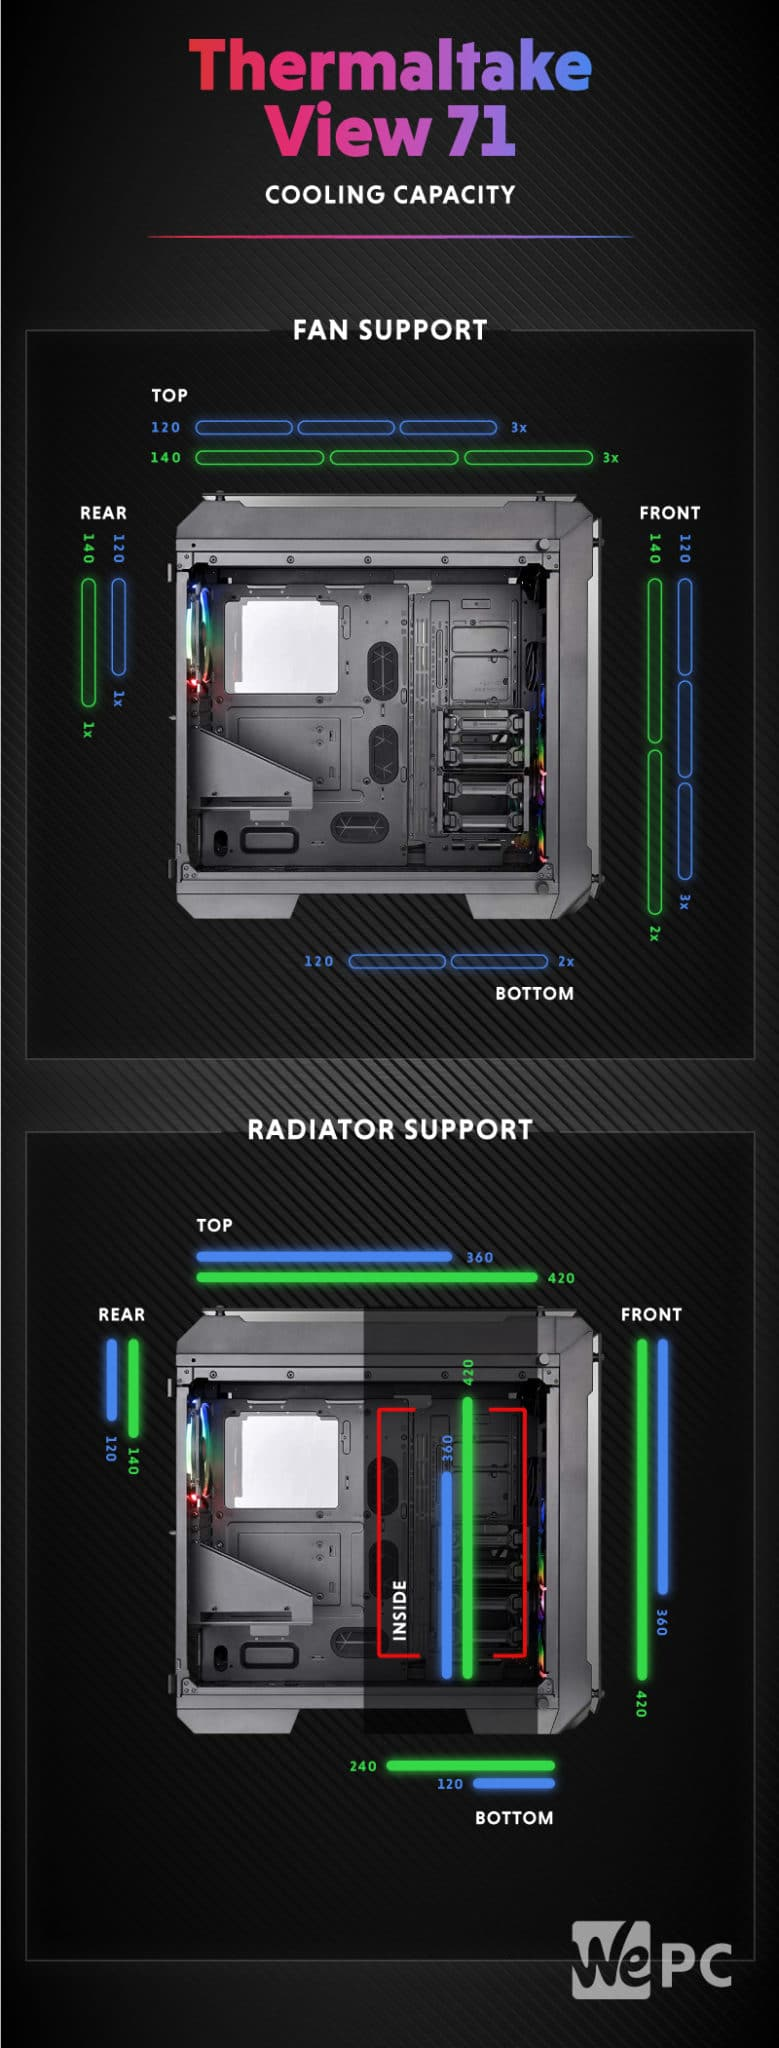 Thermaltake View 71 Cooling Capacity